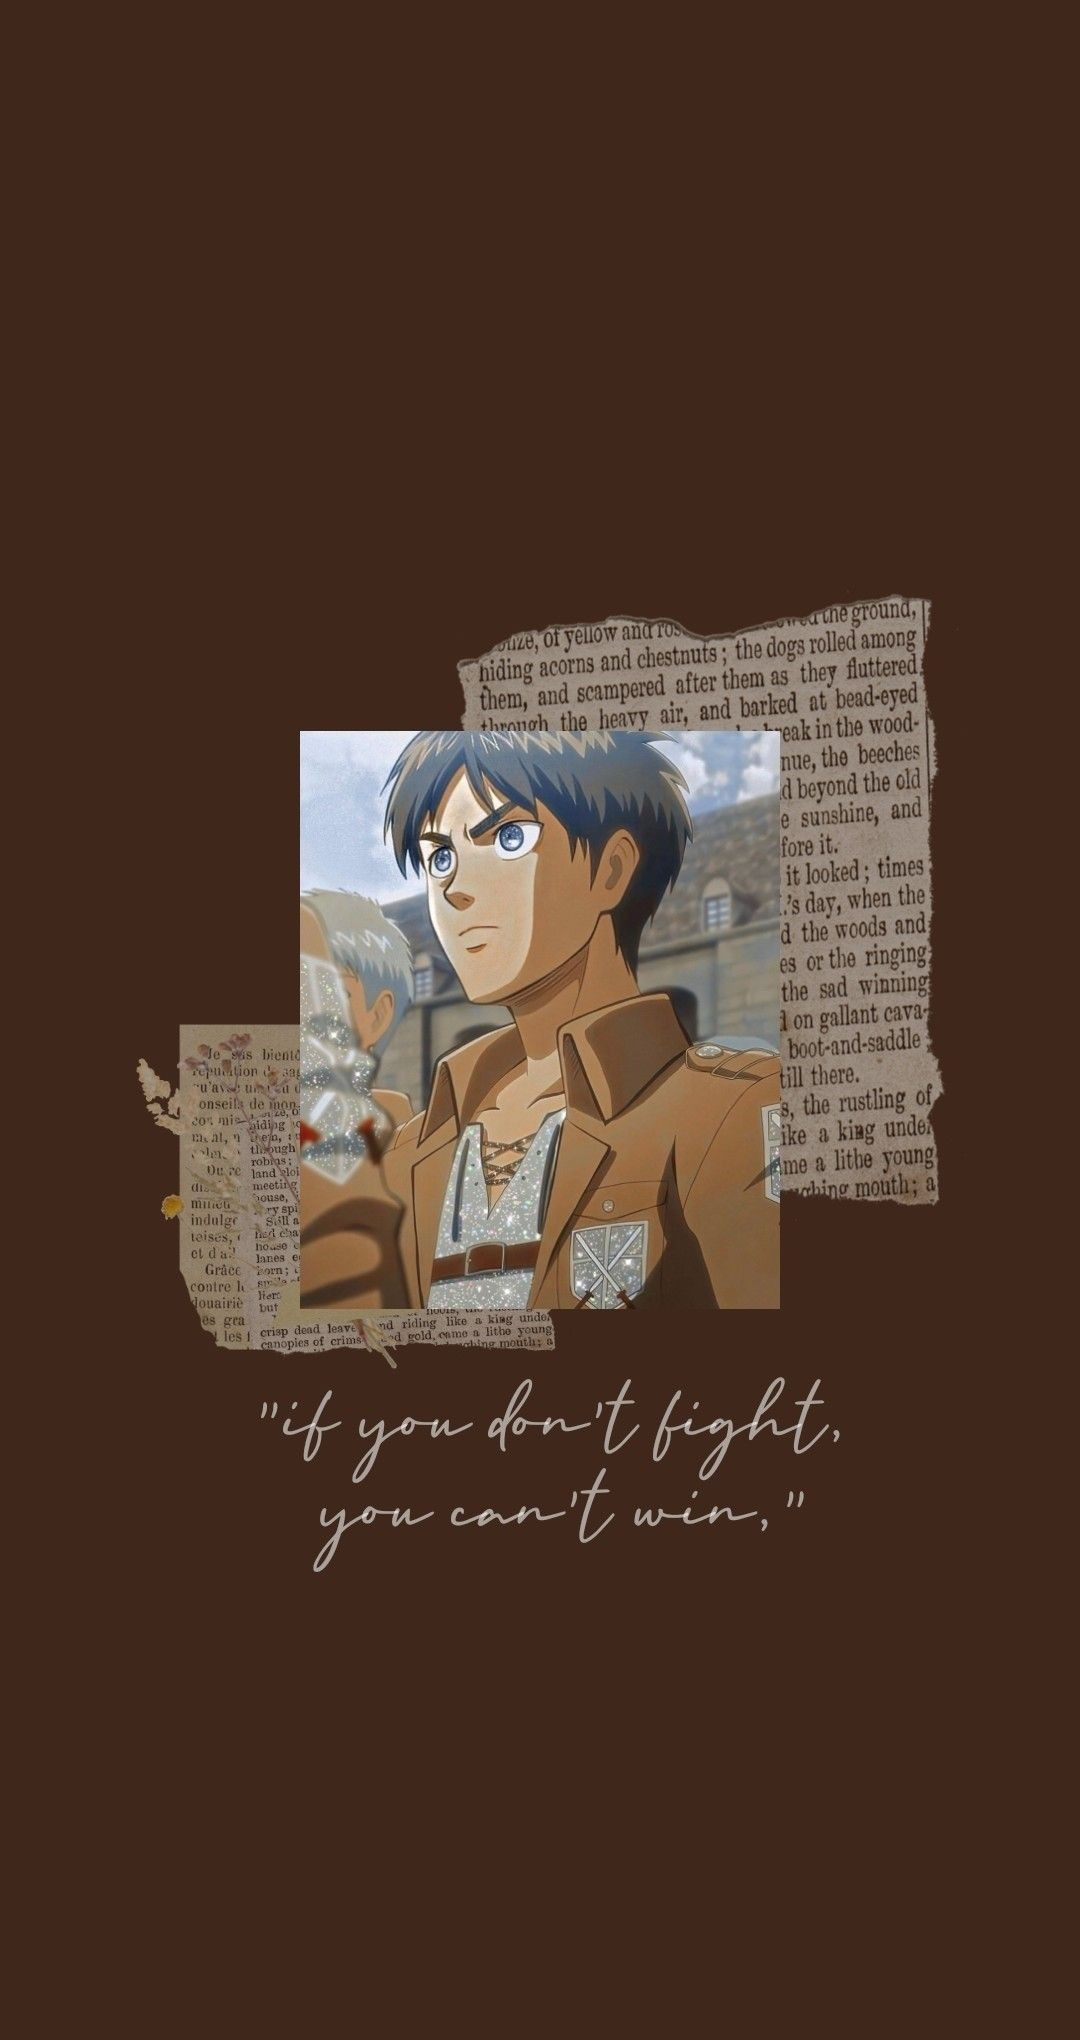 Aesthetic Eren Wallpaper In 2020 Cute Anime Wallpaper Anime Wallpaper Anime Wallpaper Iphone